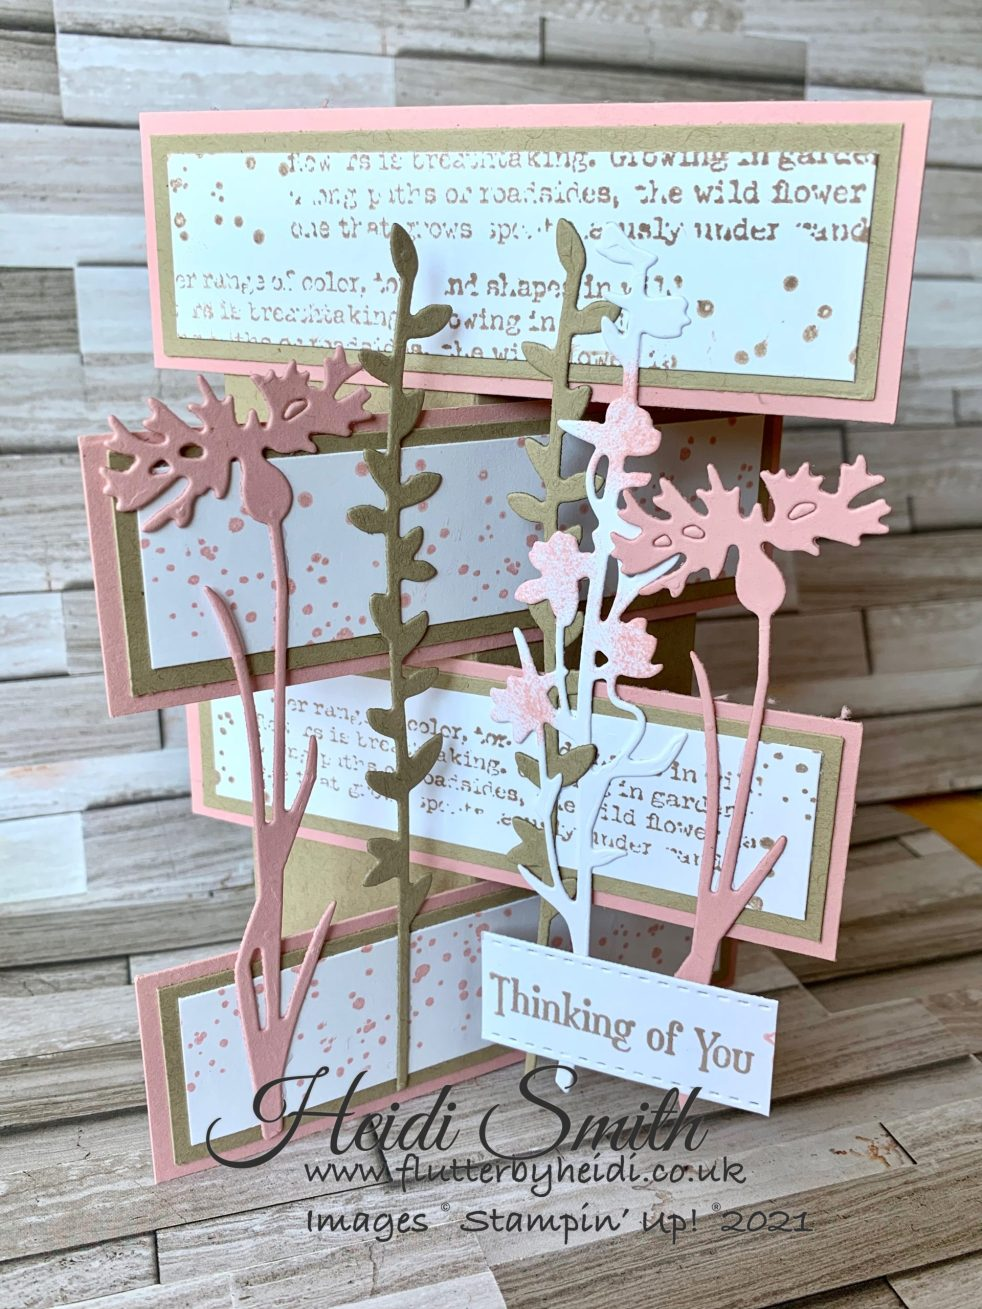 Tower flap card